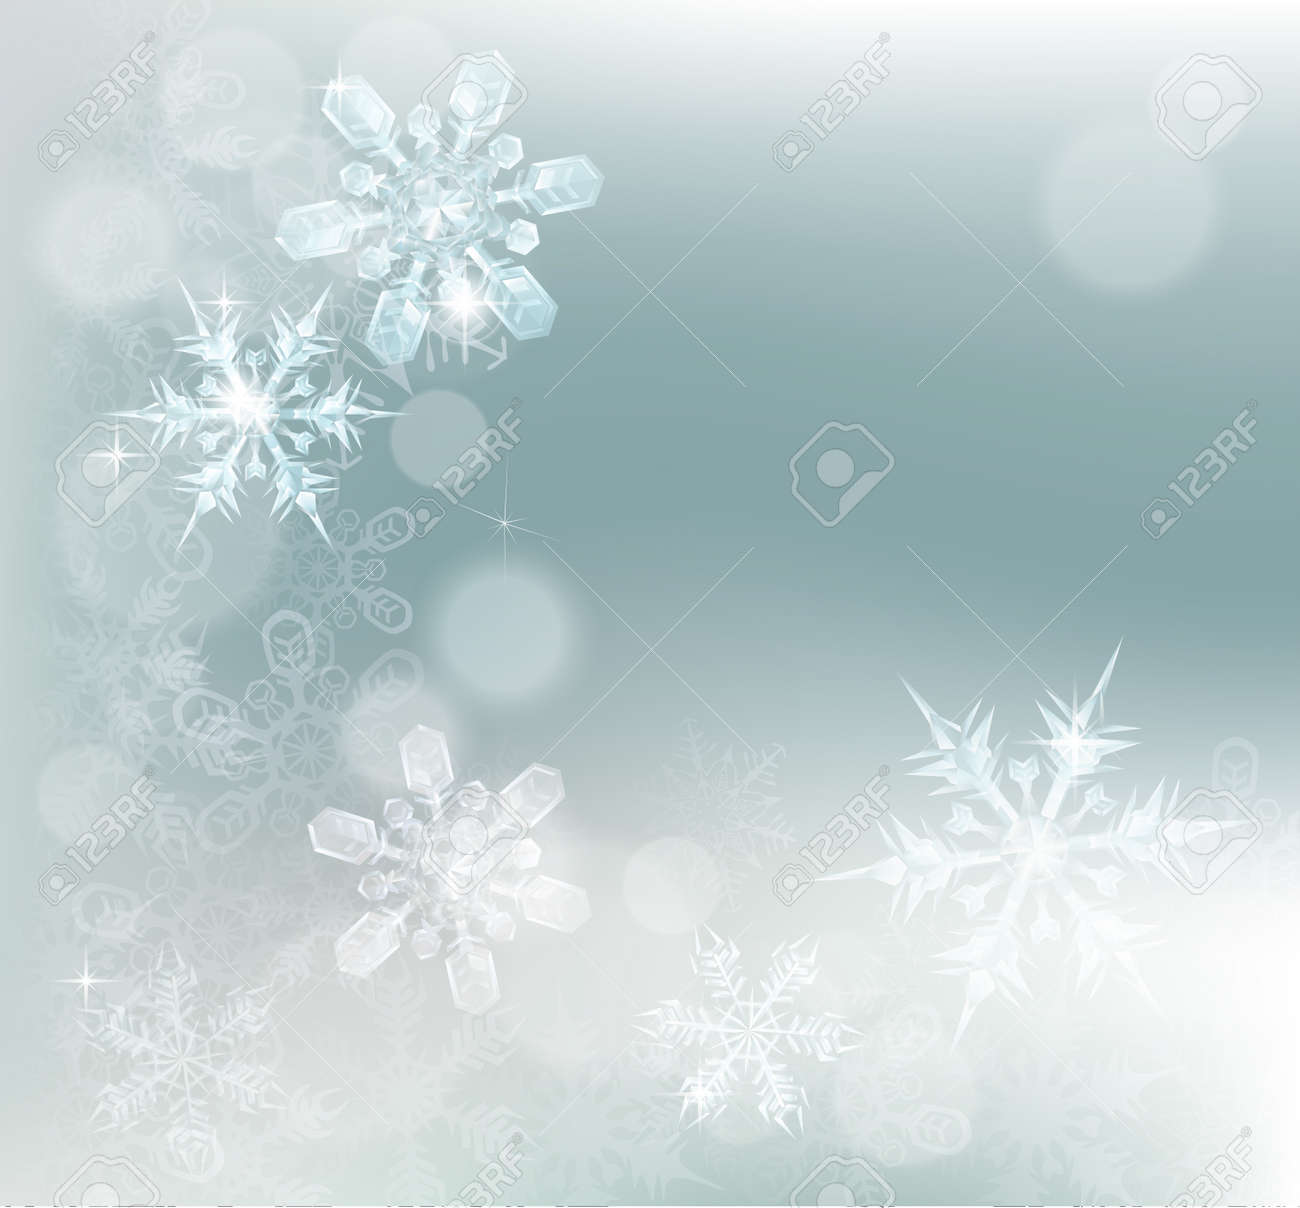 Blue silver abstract snowflakes snow flakes Christmas or New Year festive winter design background. - 45156056